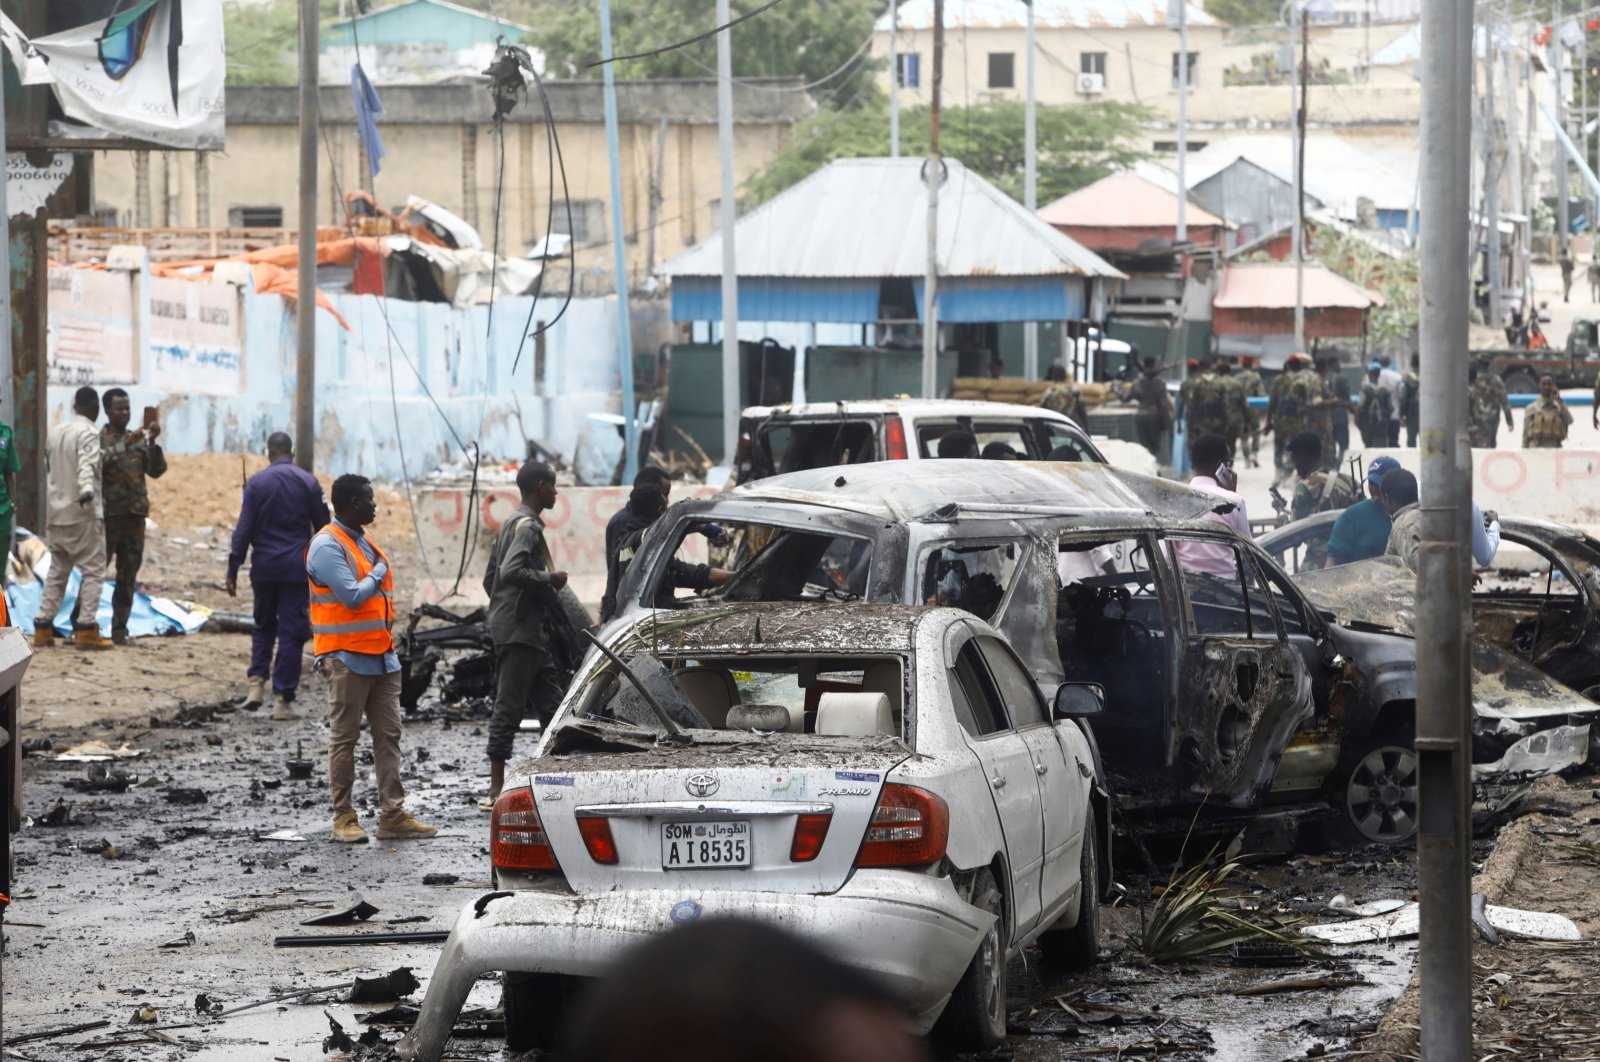 Civilians and Somalian security officers gather at the scene of a suicide car bomb at a street junction near the president's residence, in Mogadishu, Somalia, Sep. 25, 2021. (Reuters Photo)